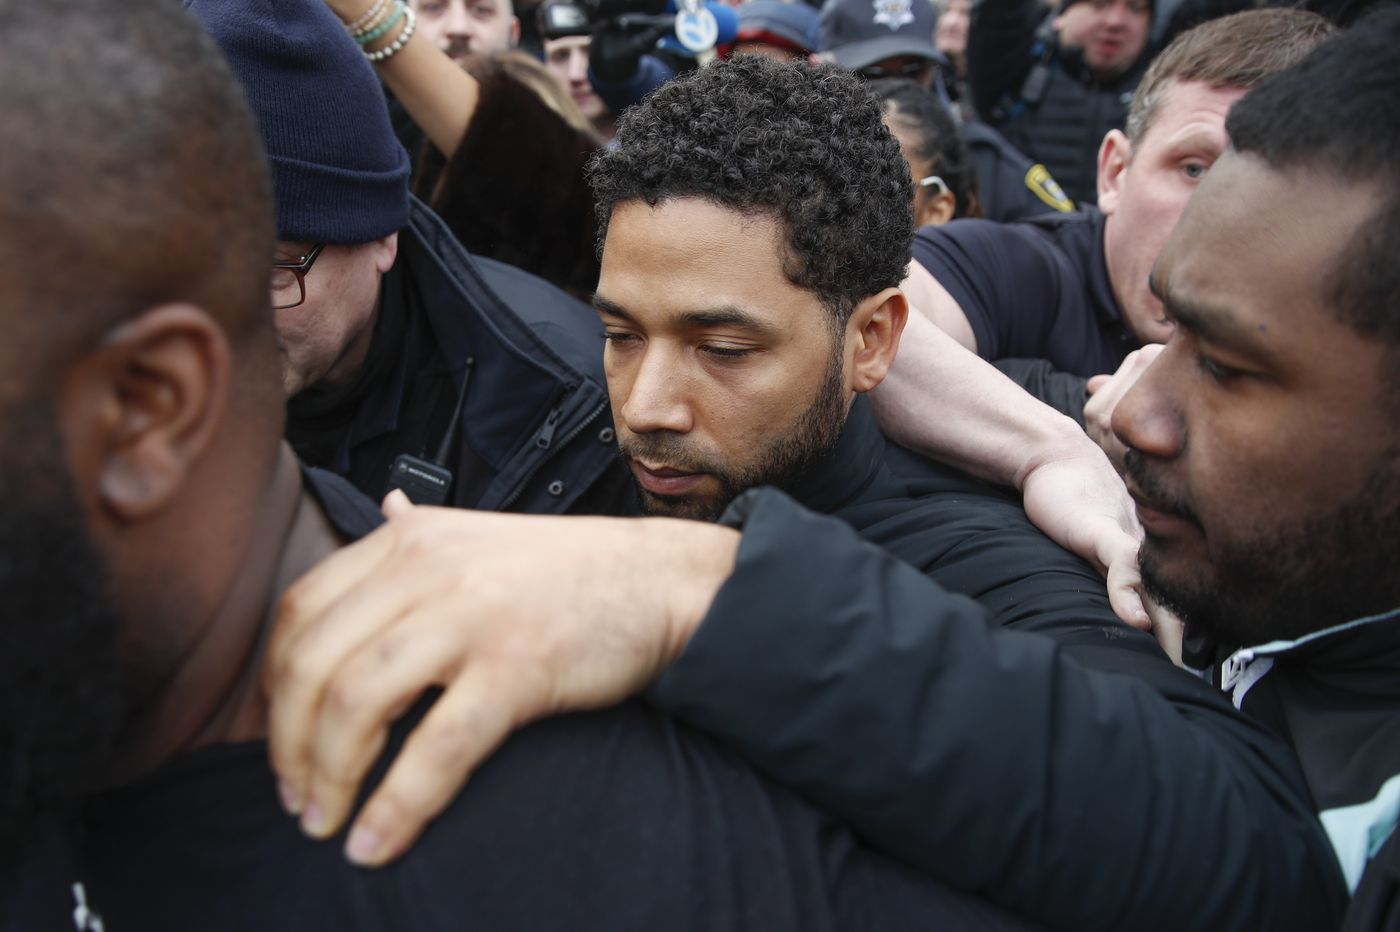 Smollett gave detailed instructions for fake attack, prosecutor says; actor released on bond